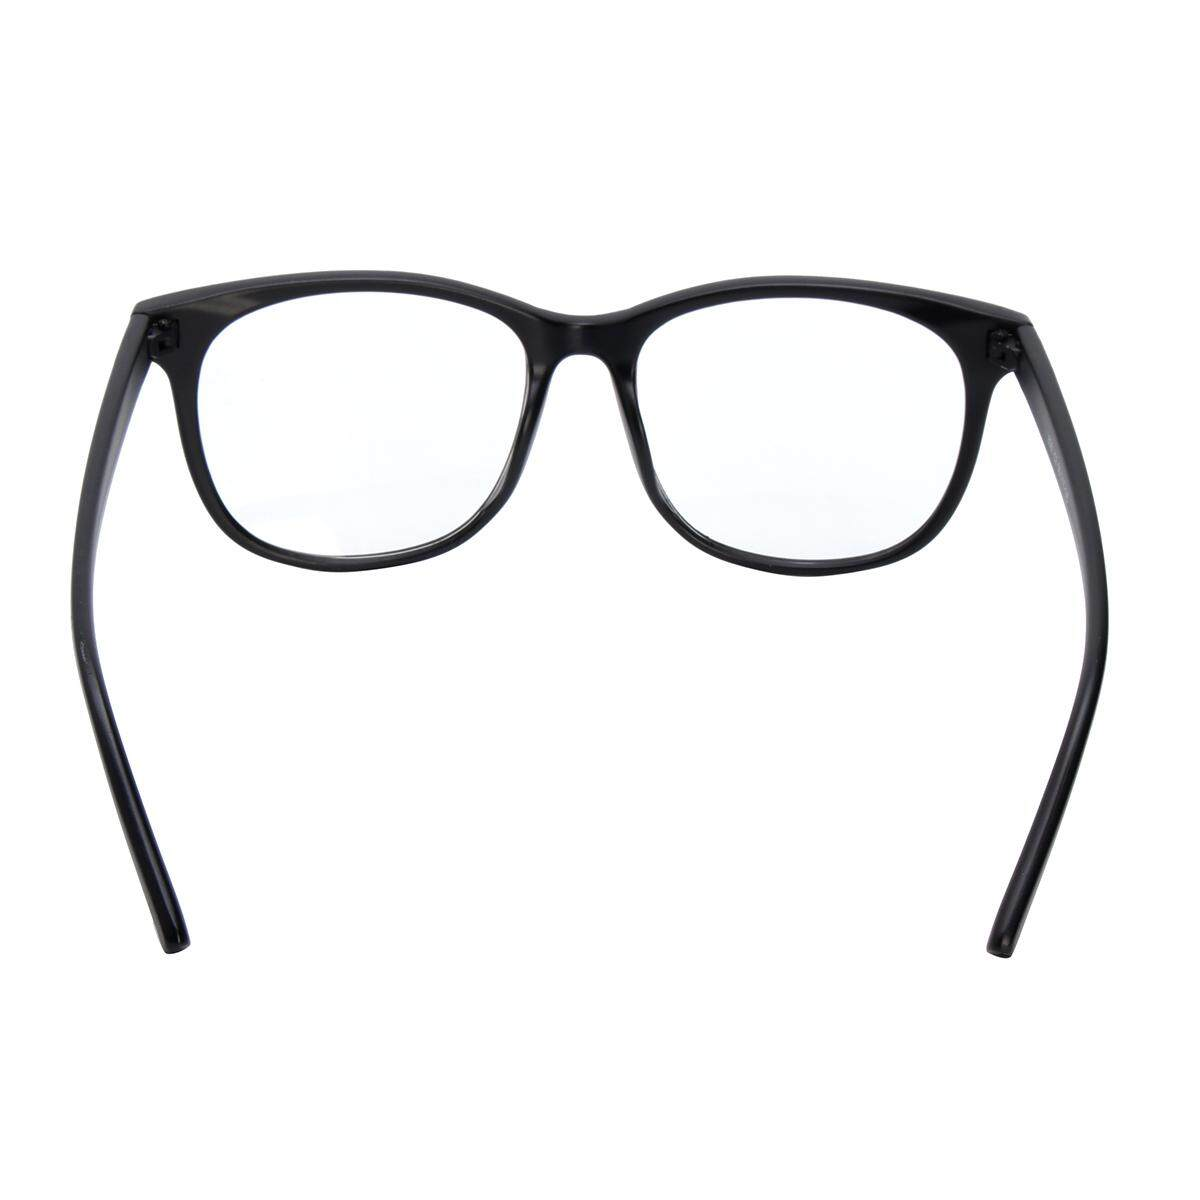 Men Women Spectacles Round Eyeglass Chic Full Rim Frames Optical Eyewear Glasses